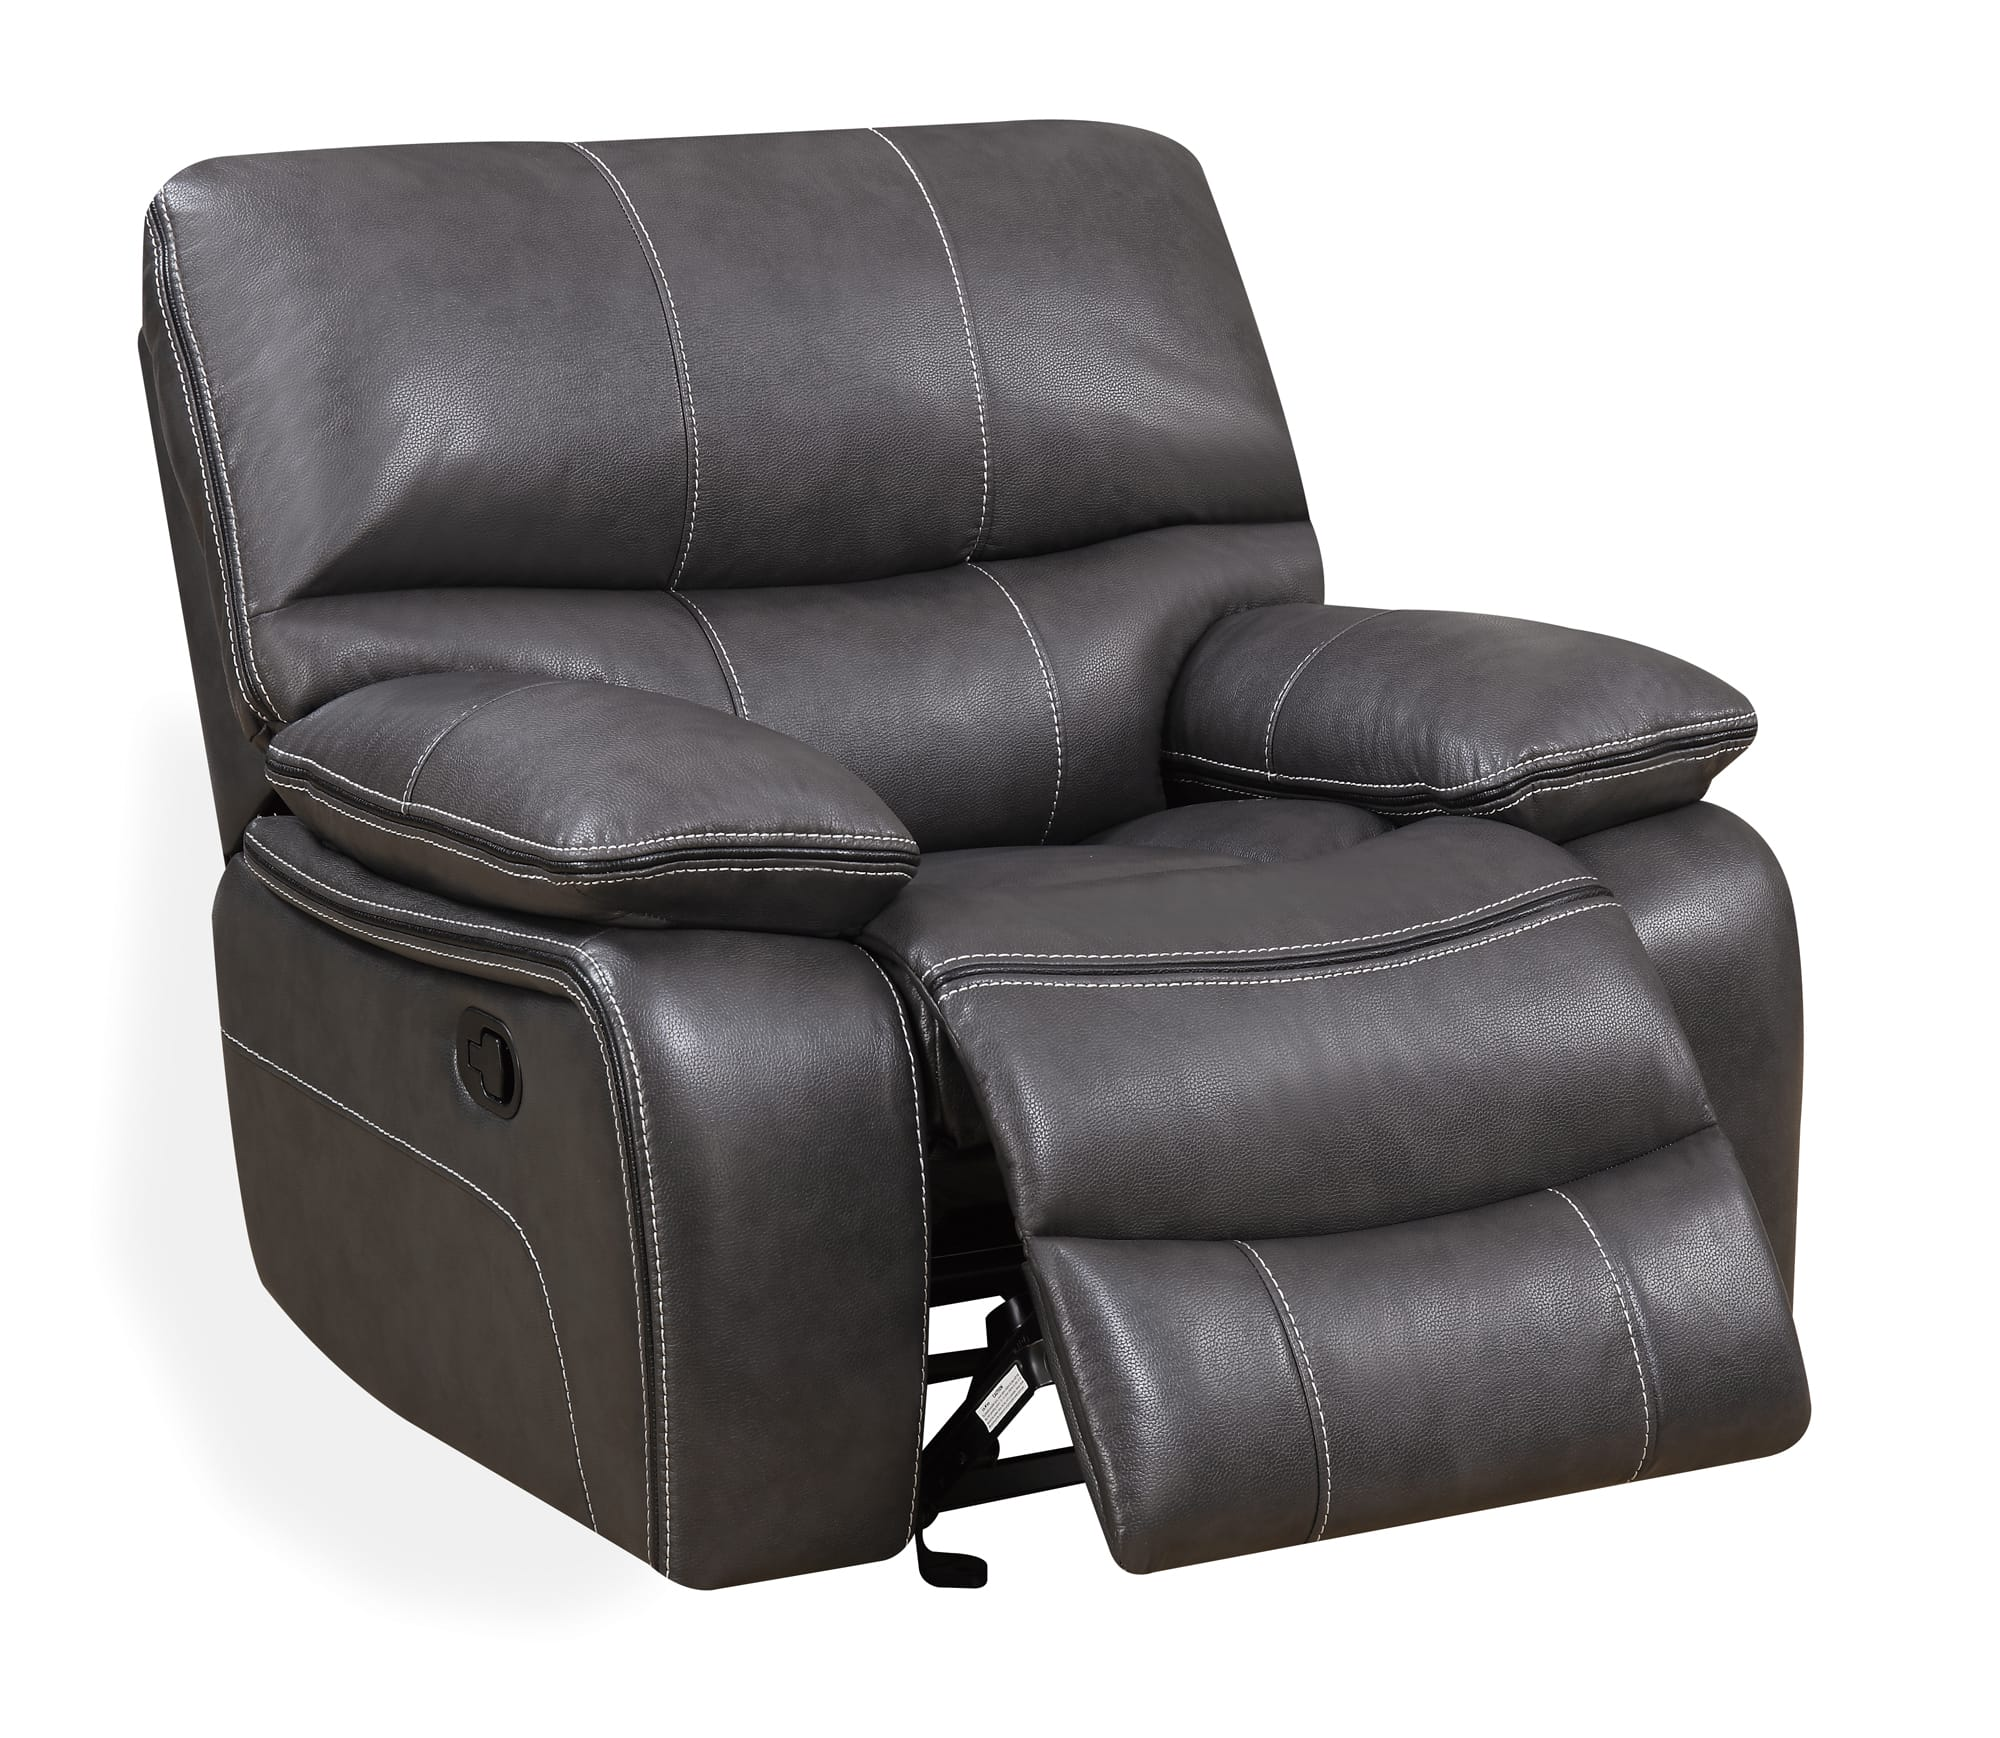 U0040 Grey Black Leather Glider Reclining Chair By Global